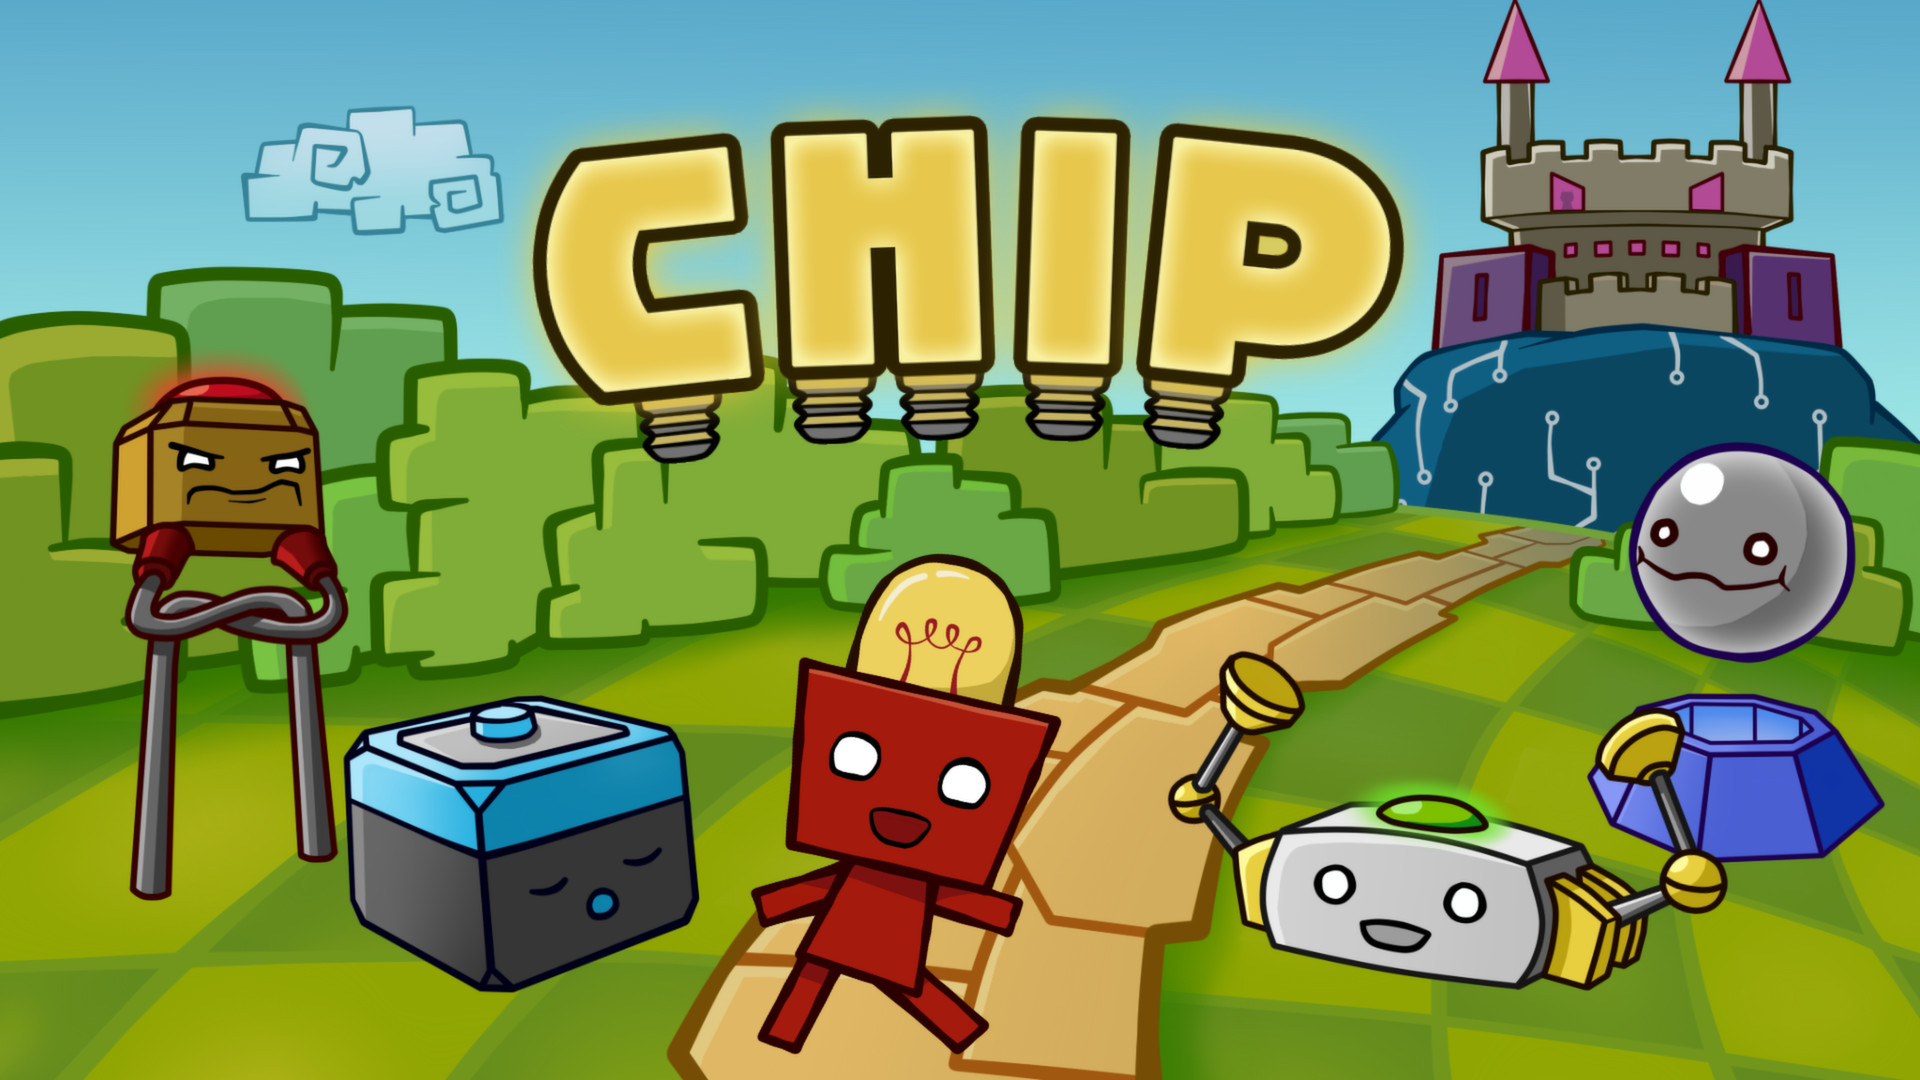 Free Games Chip